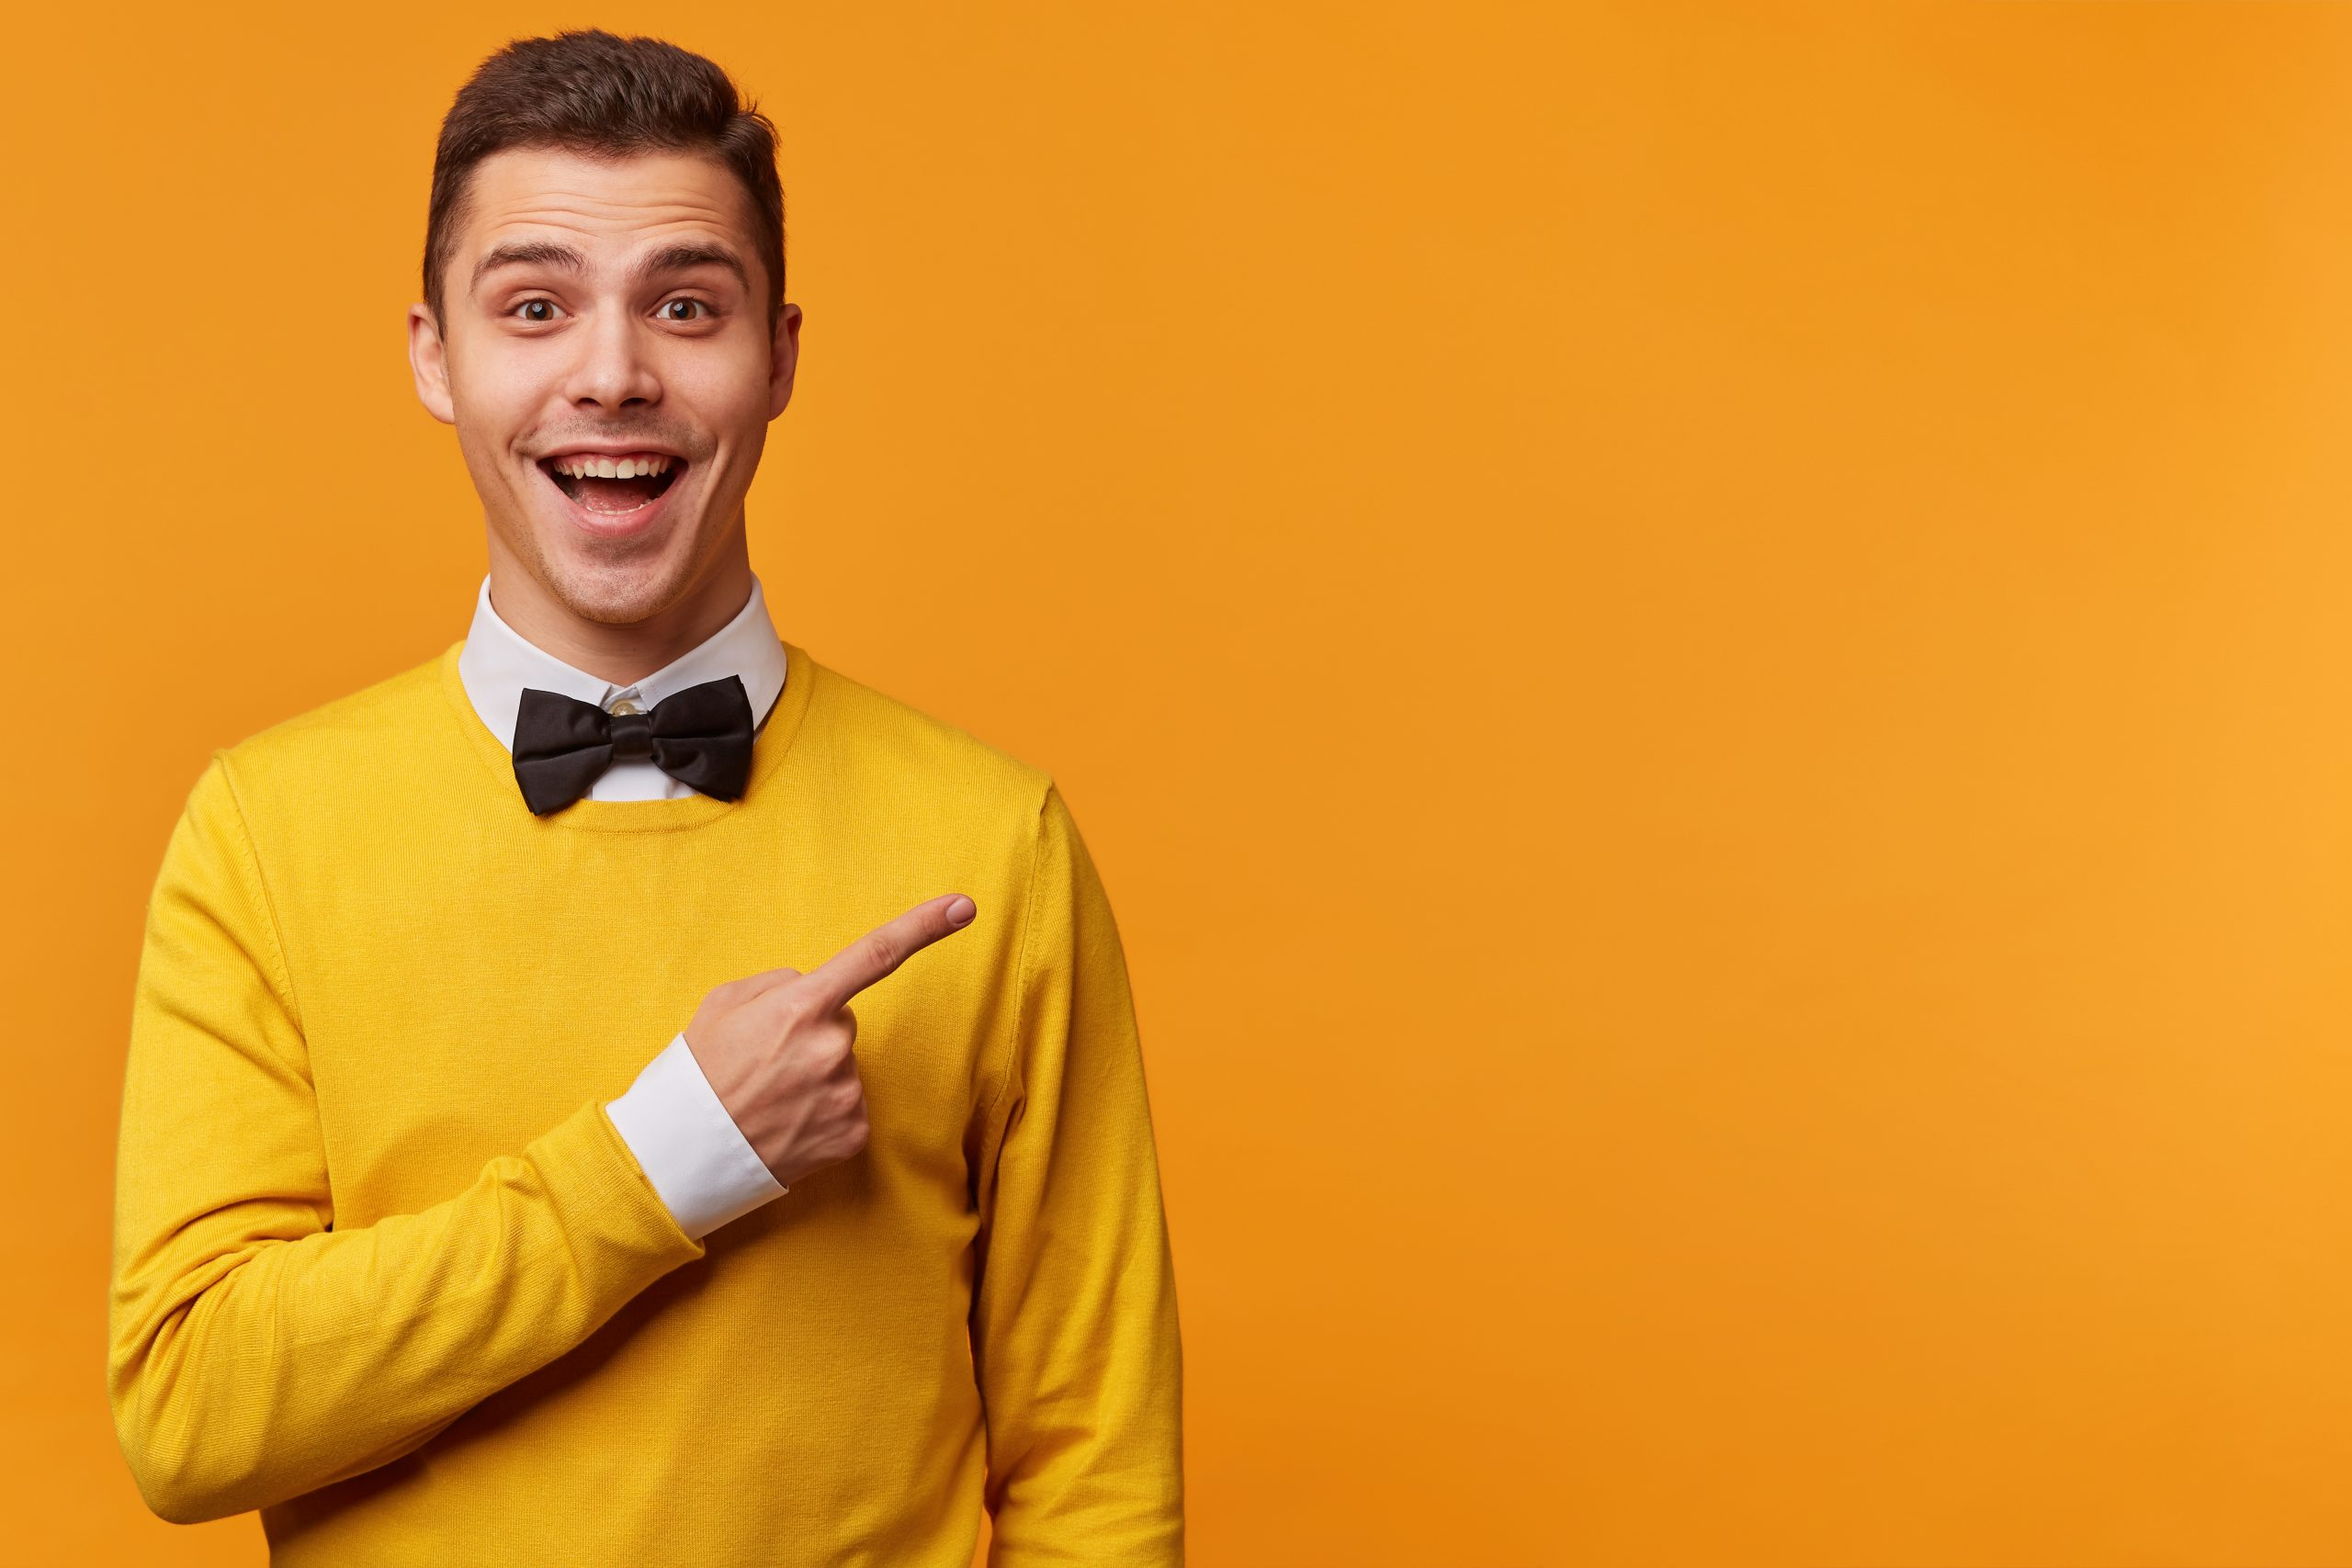 glad-happy-man-yellow-sweater-white-shirt-black-bow-tie-pointing-right-with-his-finger-scaled